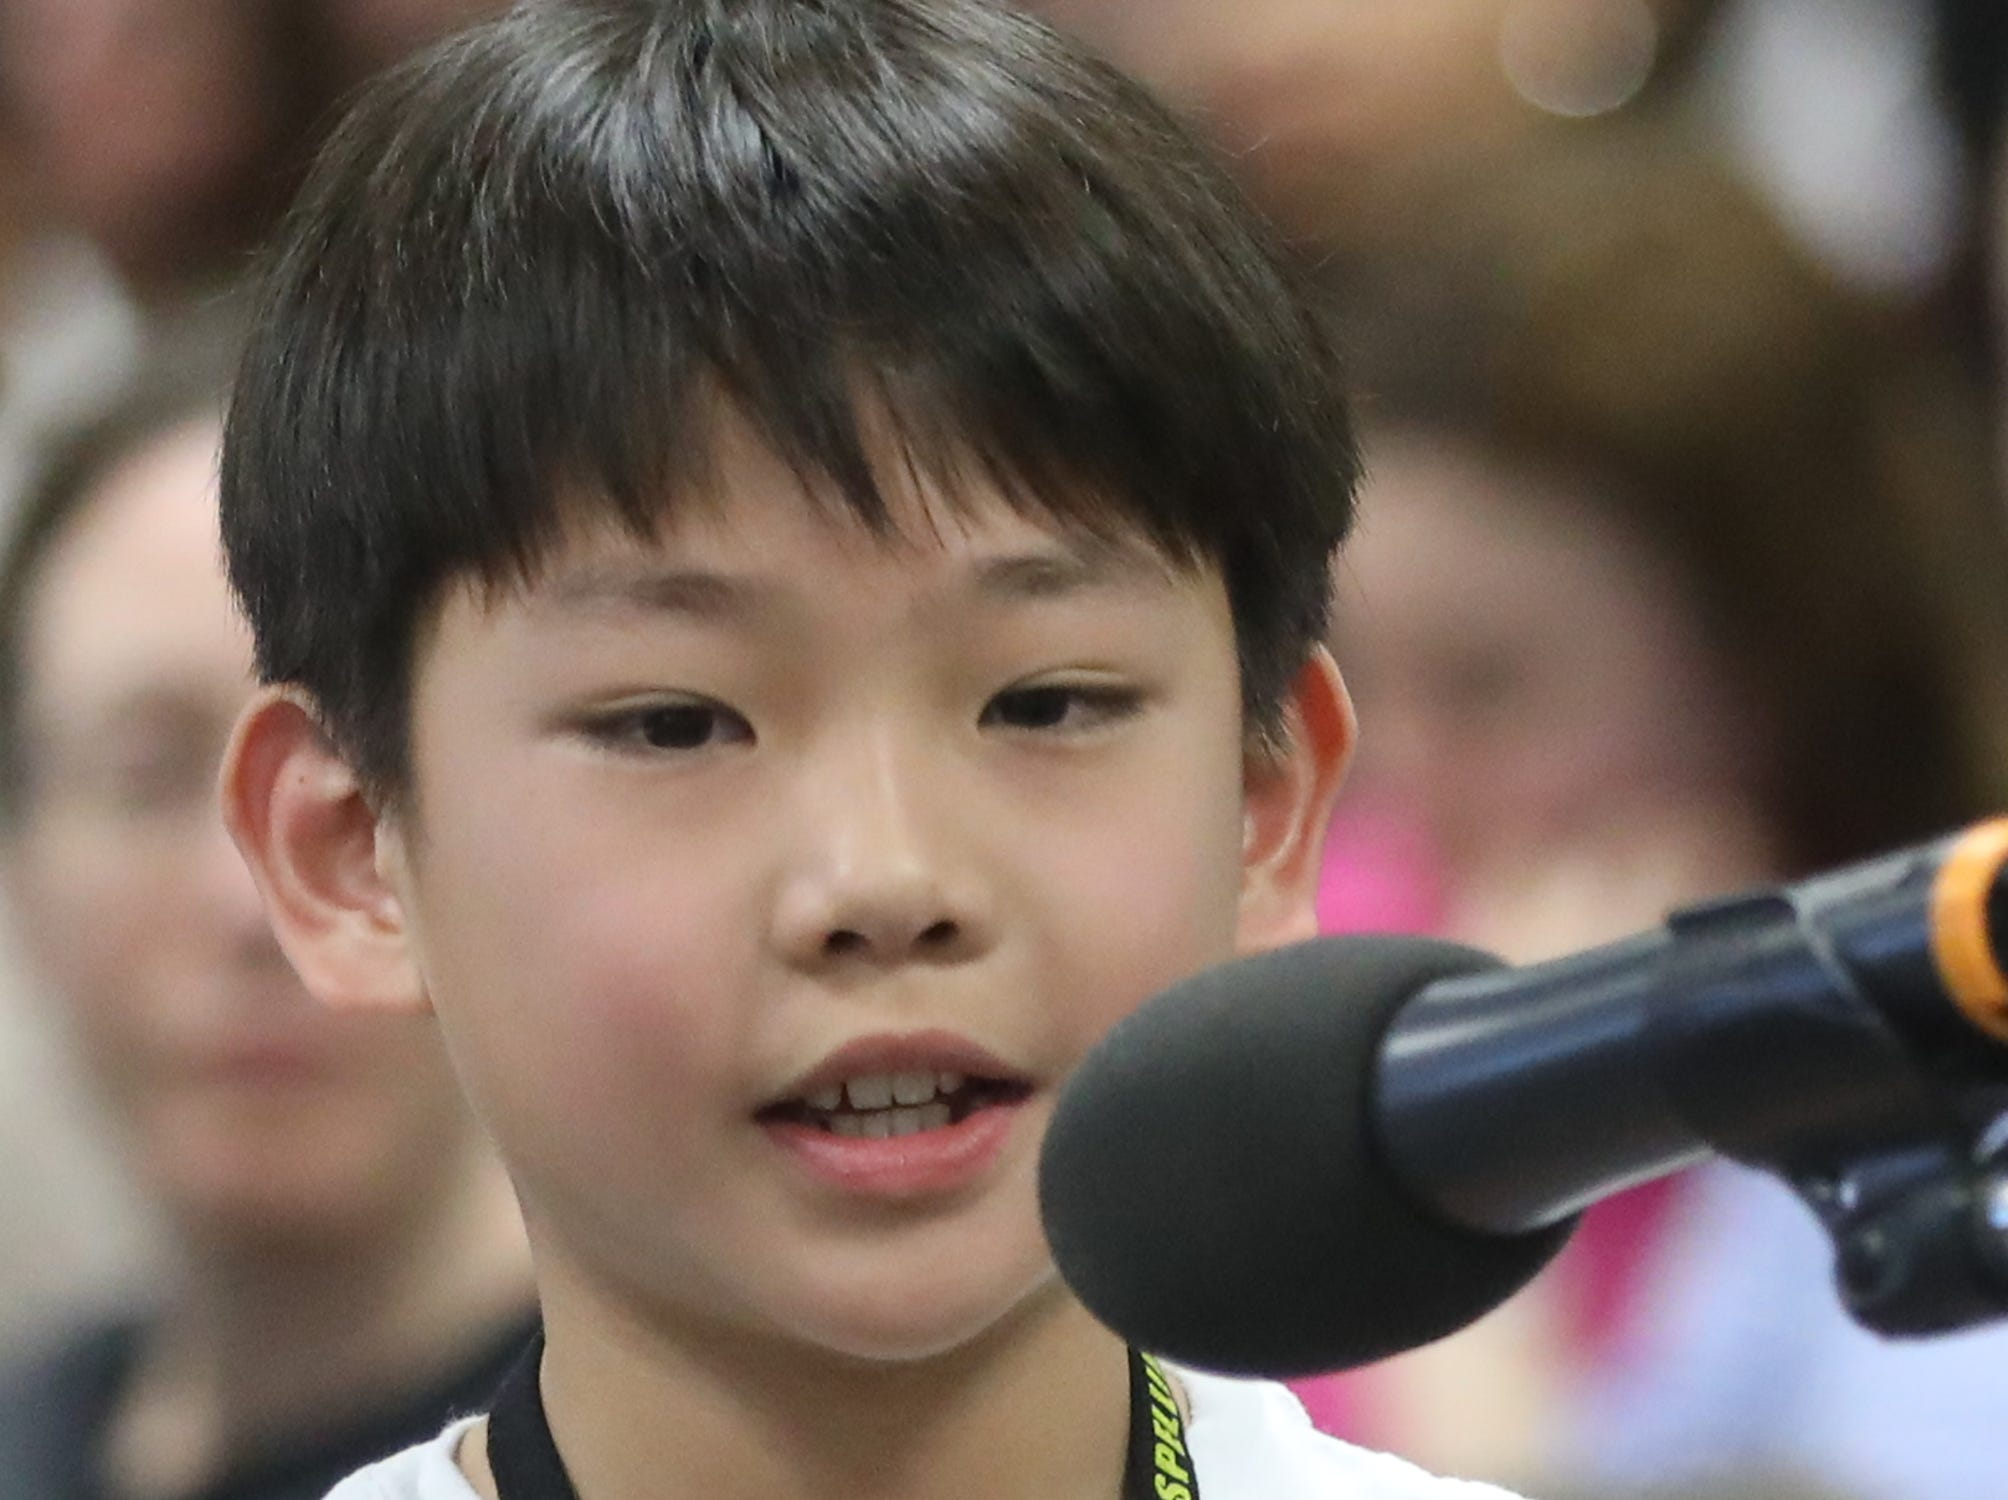 Andrew Hong, of Paramus, competes in the first round of the 2019 North Jersey Spelling Bee, in Paramus. Thursday, March 14, 2019